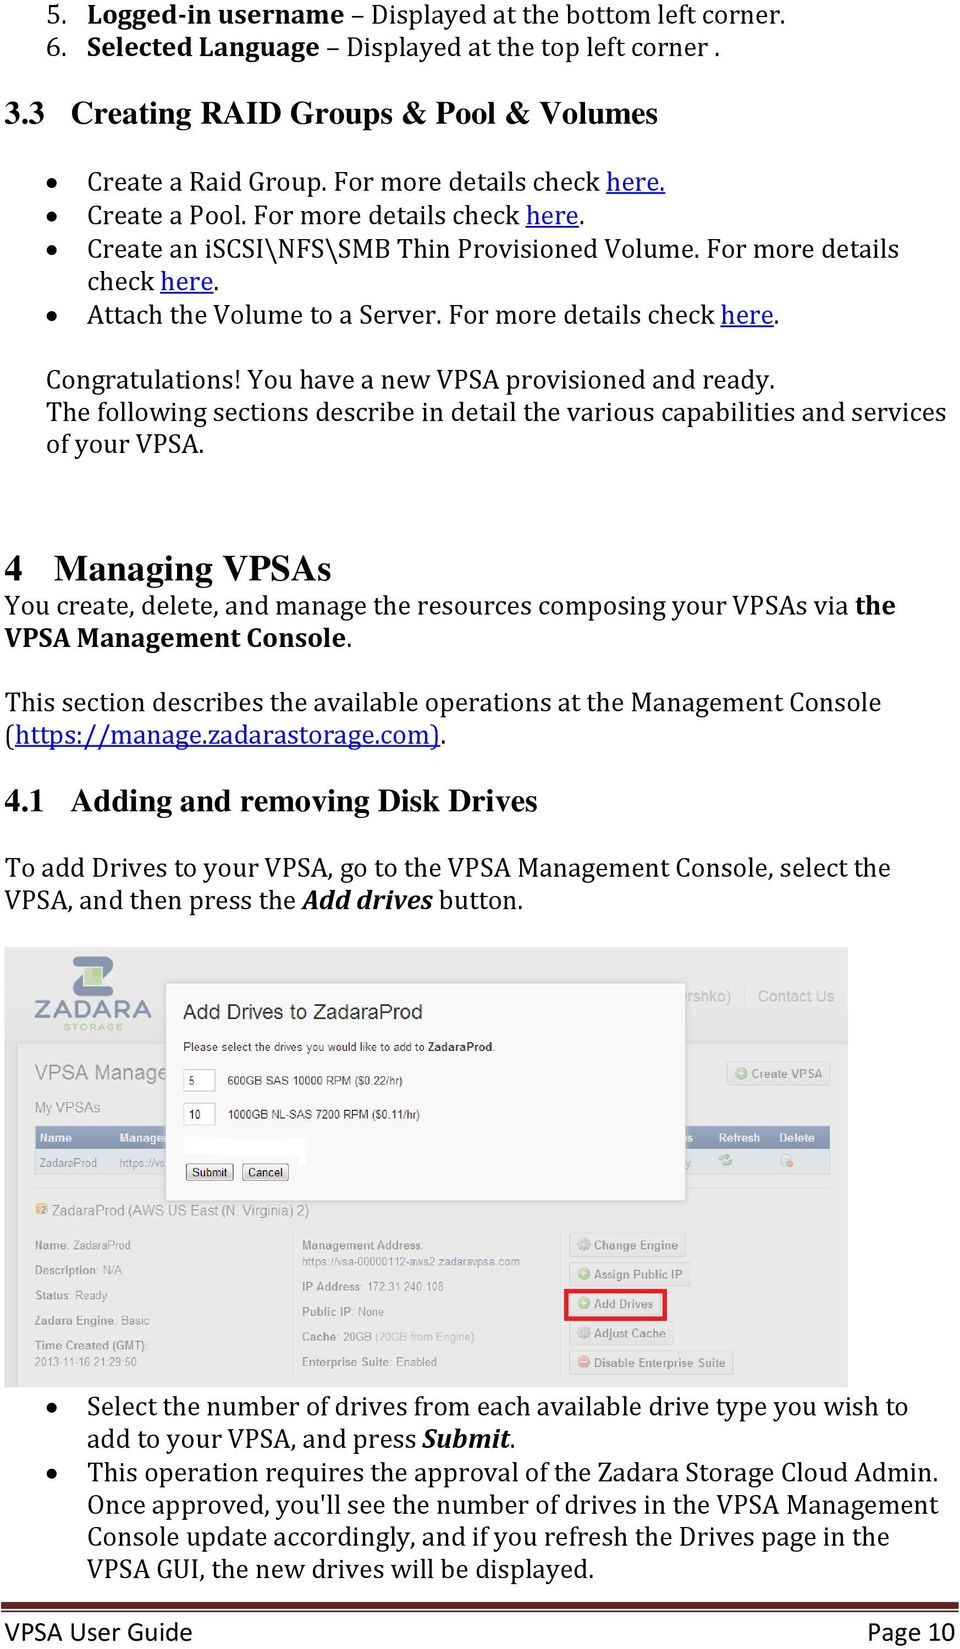 For more details check here. Congratulations! You have a new VPSA provisioned and ready. The following sections describe in detail the various capabilities and services of your VPSA.